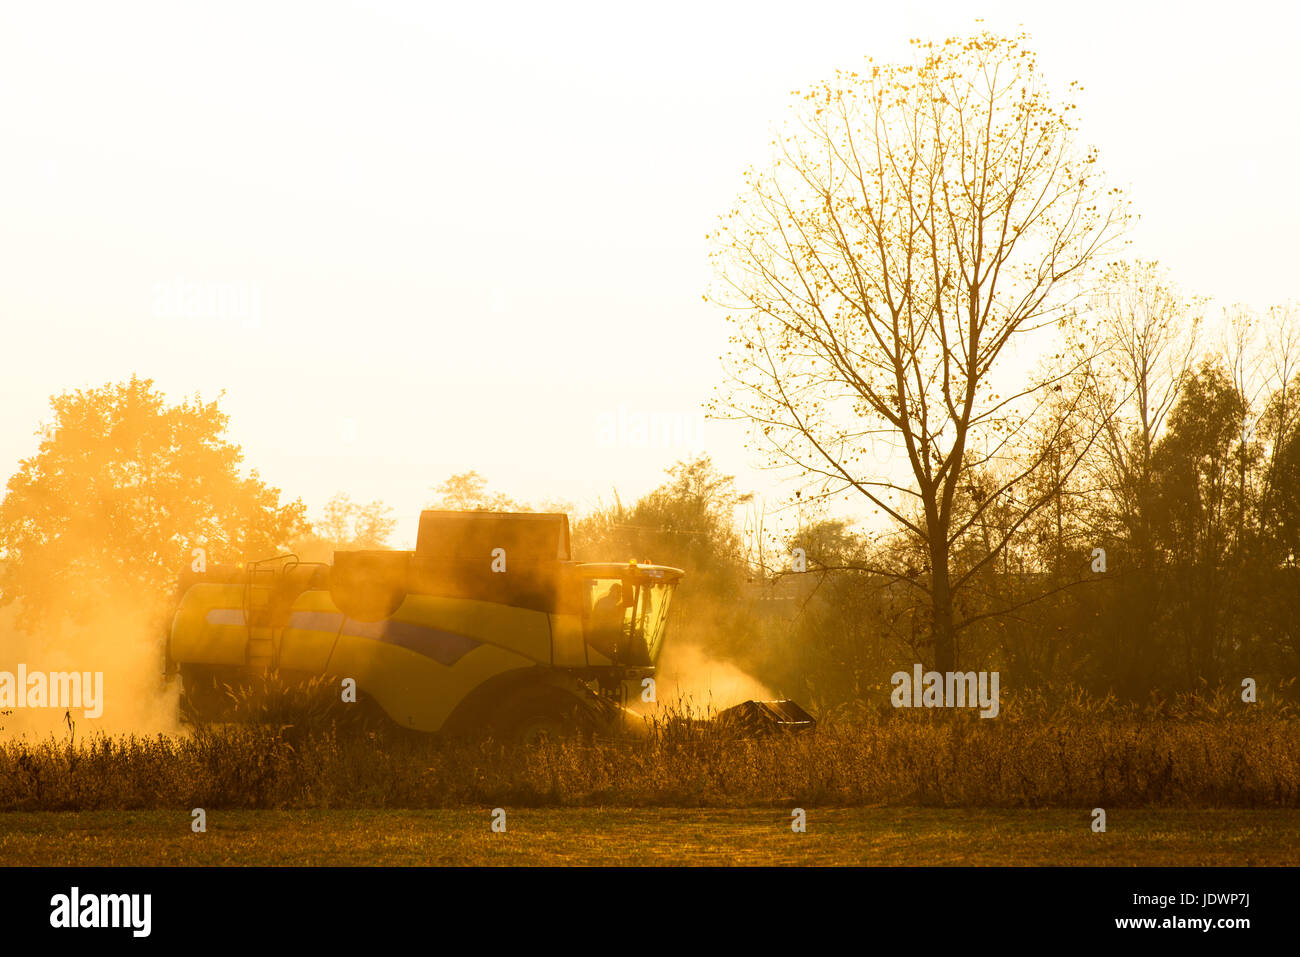 Harvester in backlight surrounded by dust works in a field at sunset Stock Photo